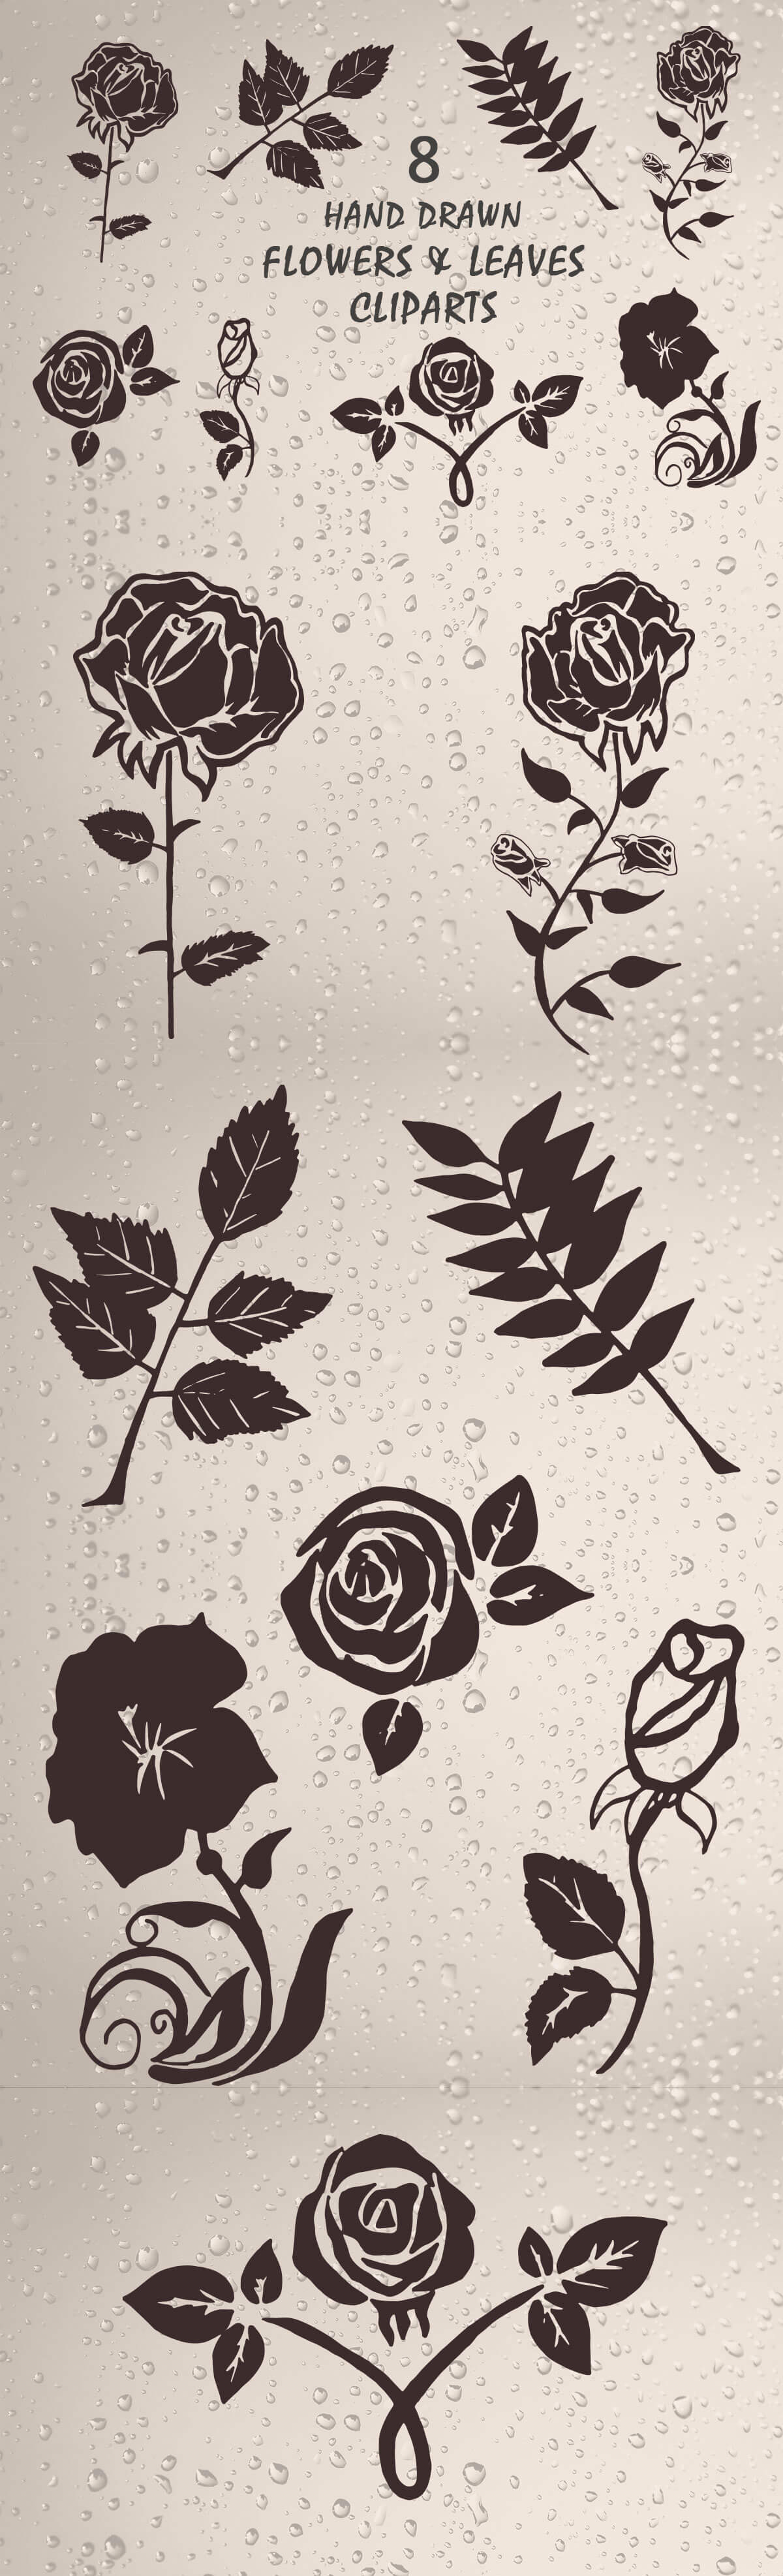 Free Handmade Flowers & Leaves Cliparts